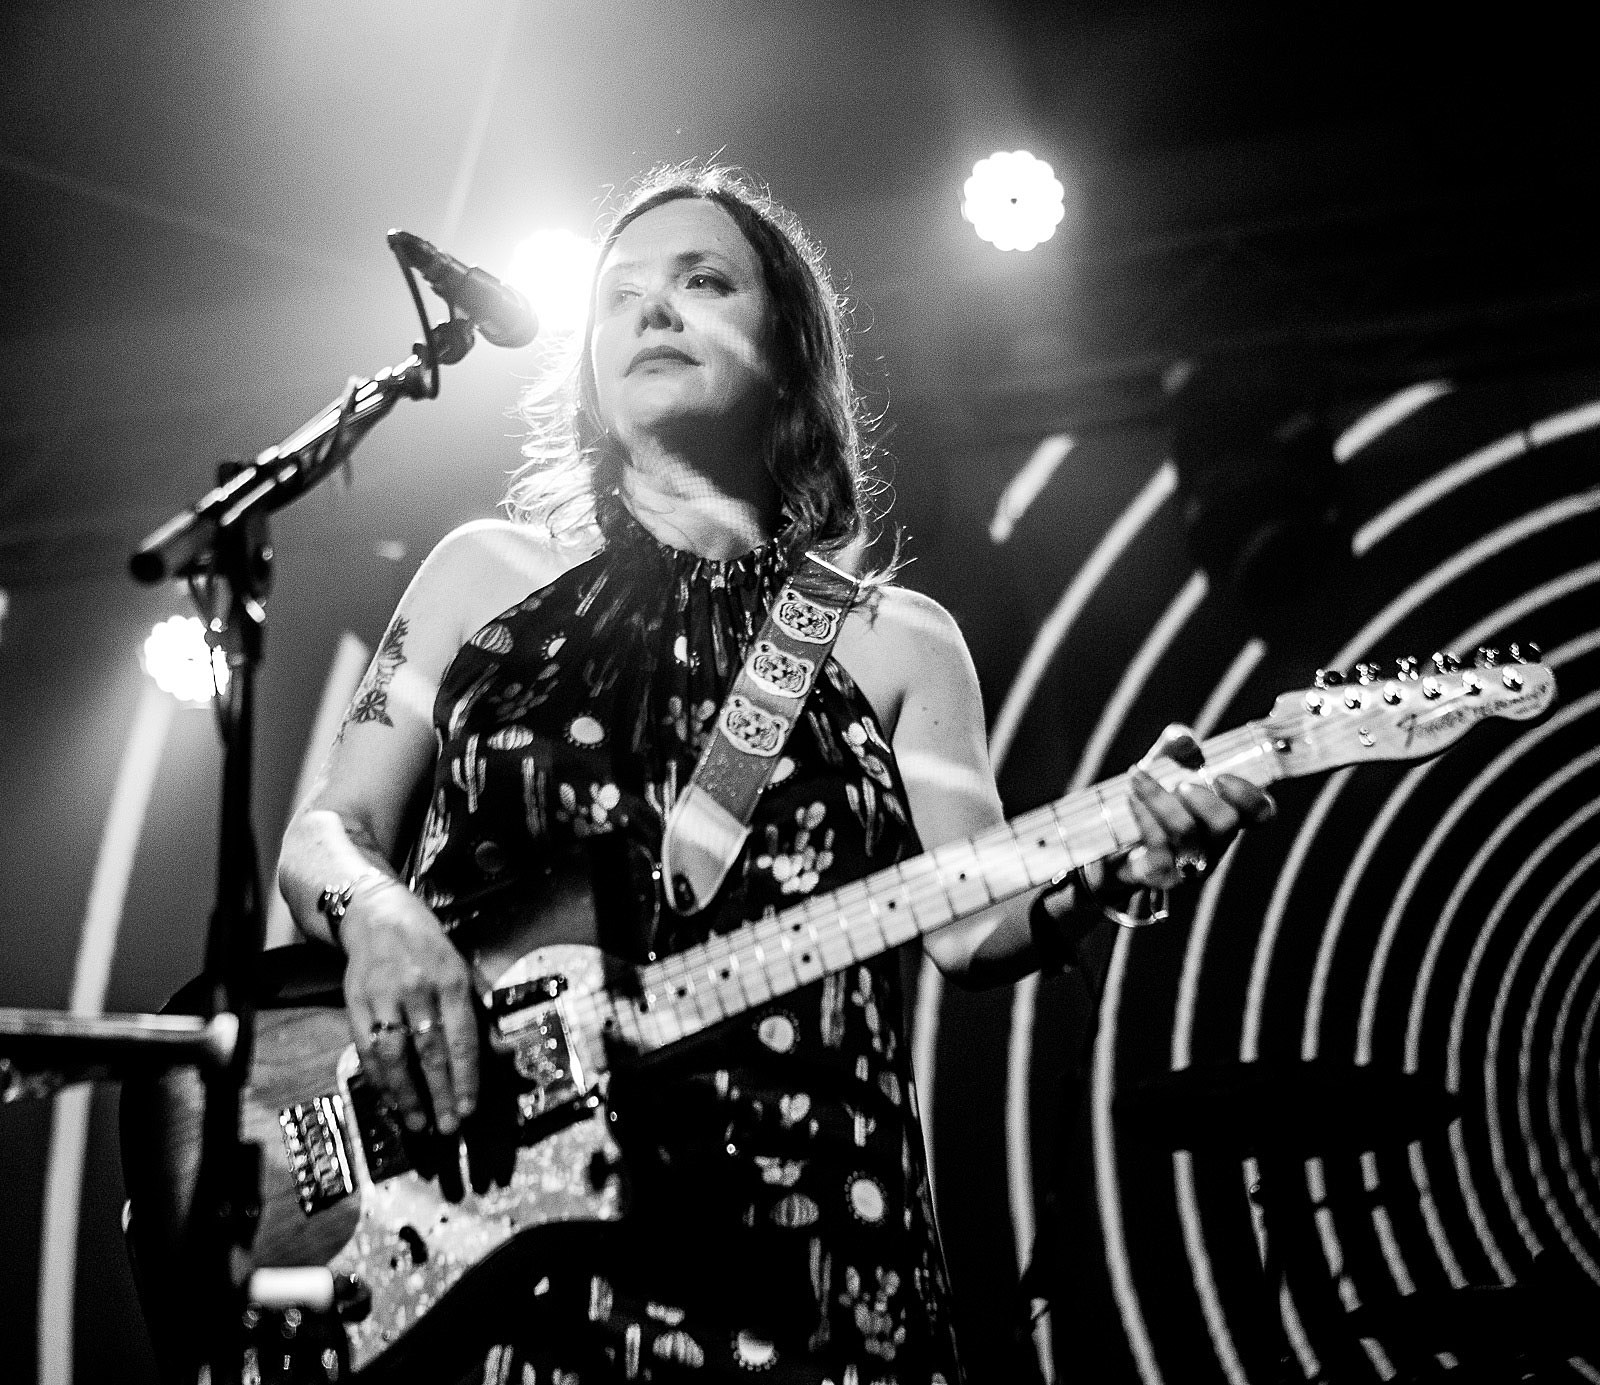 Slowdive at House of Vans